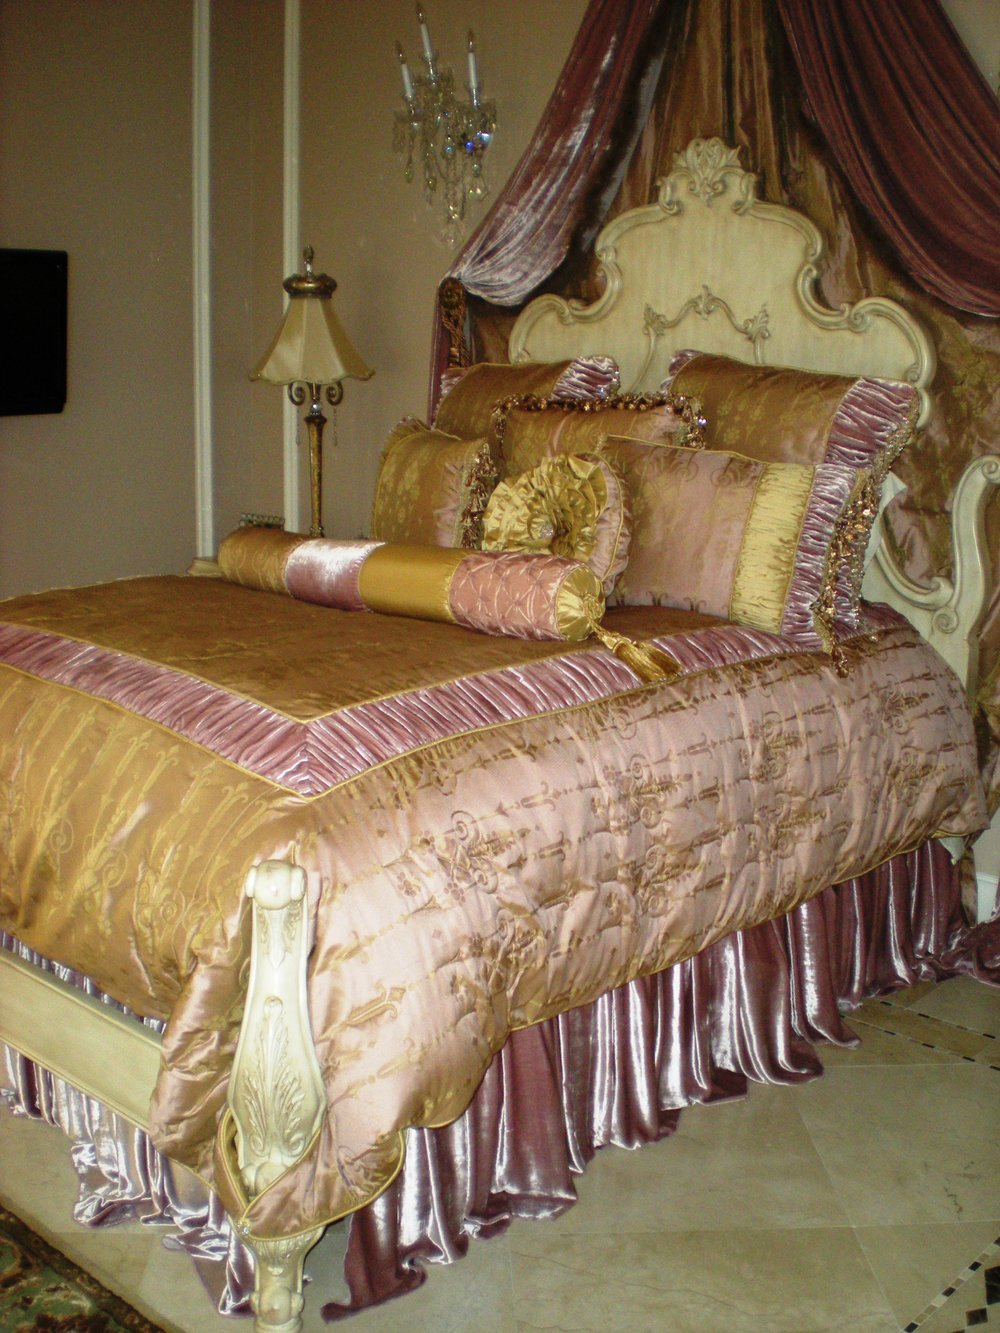 alejandra-canales-interior-designer-luxury-beding custom-made mcallen-texas (5).JPG